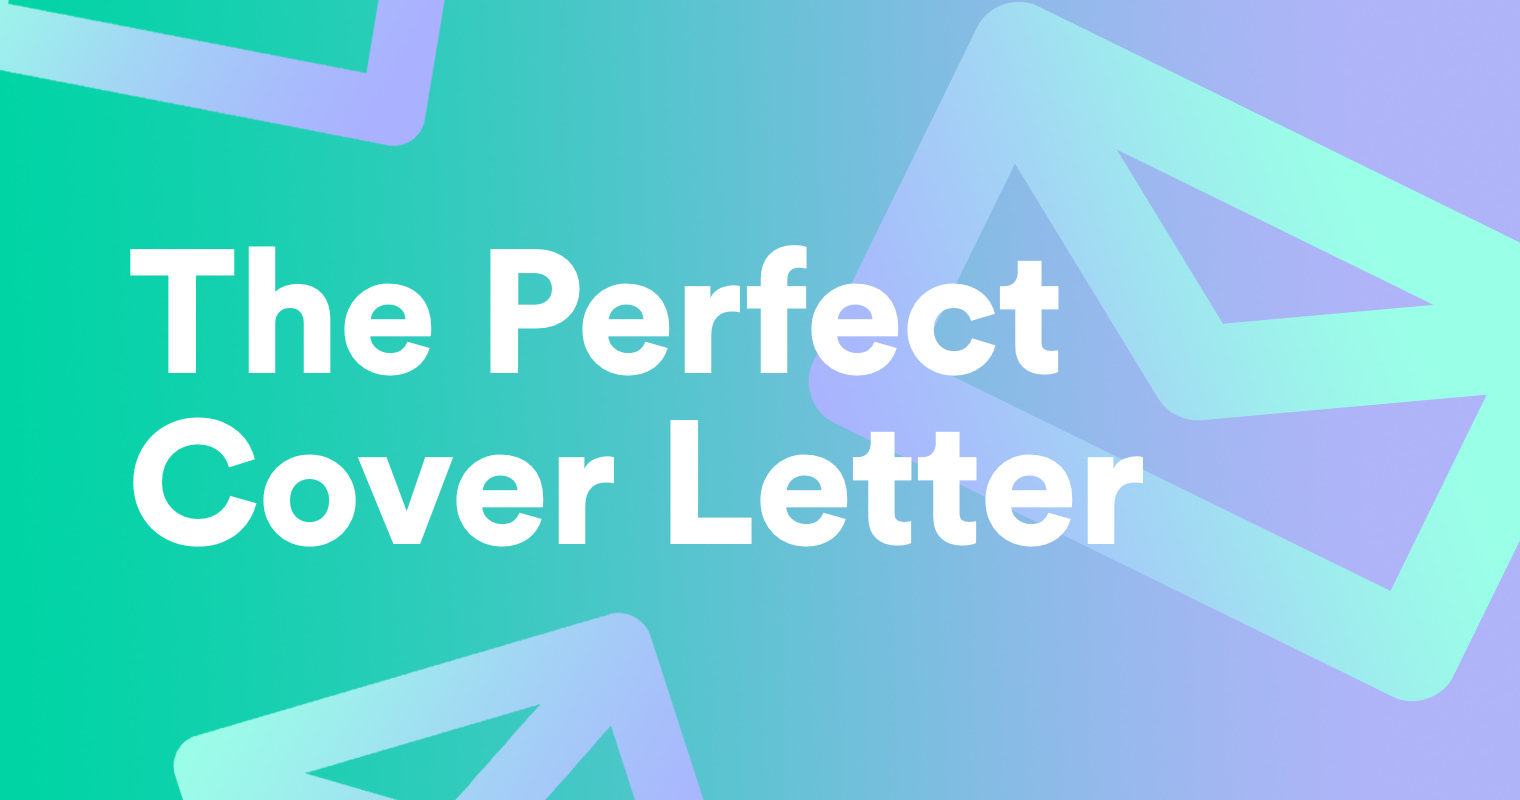 How to Write the Perfect Thank You Letter | Grammarly